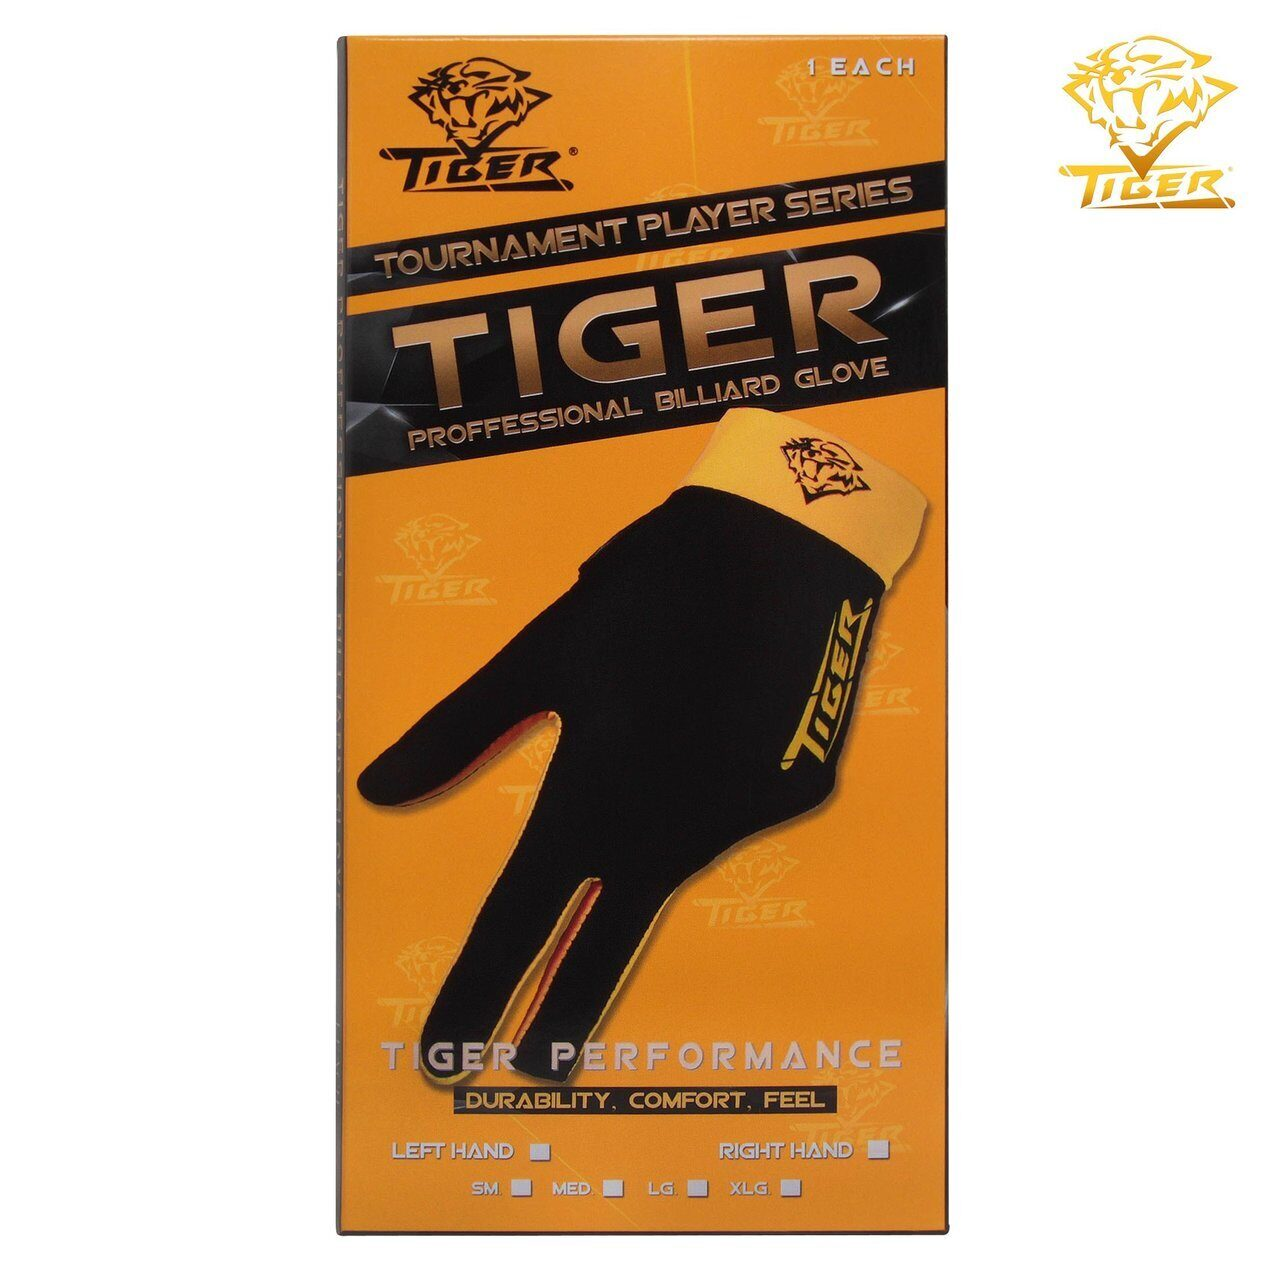 Перчатка Tiger Professional Billiard Glove правая XL